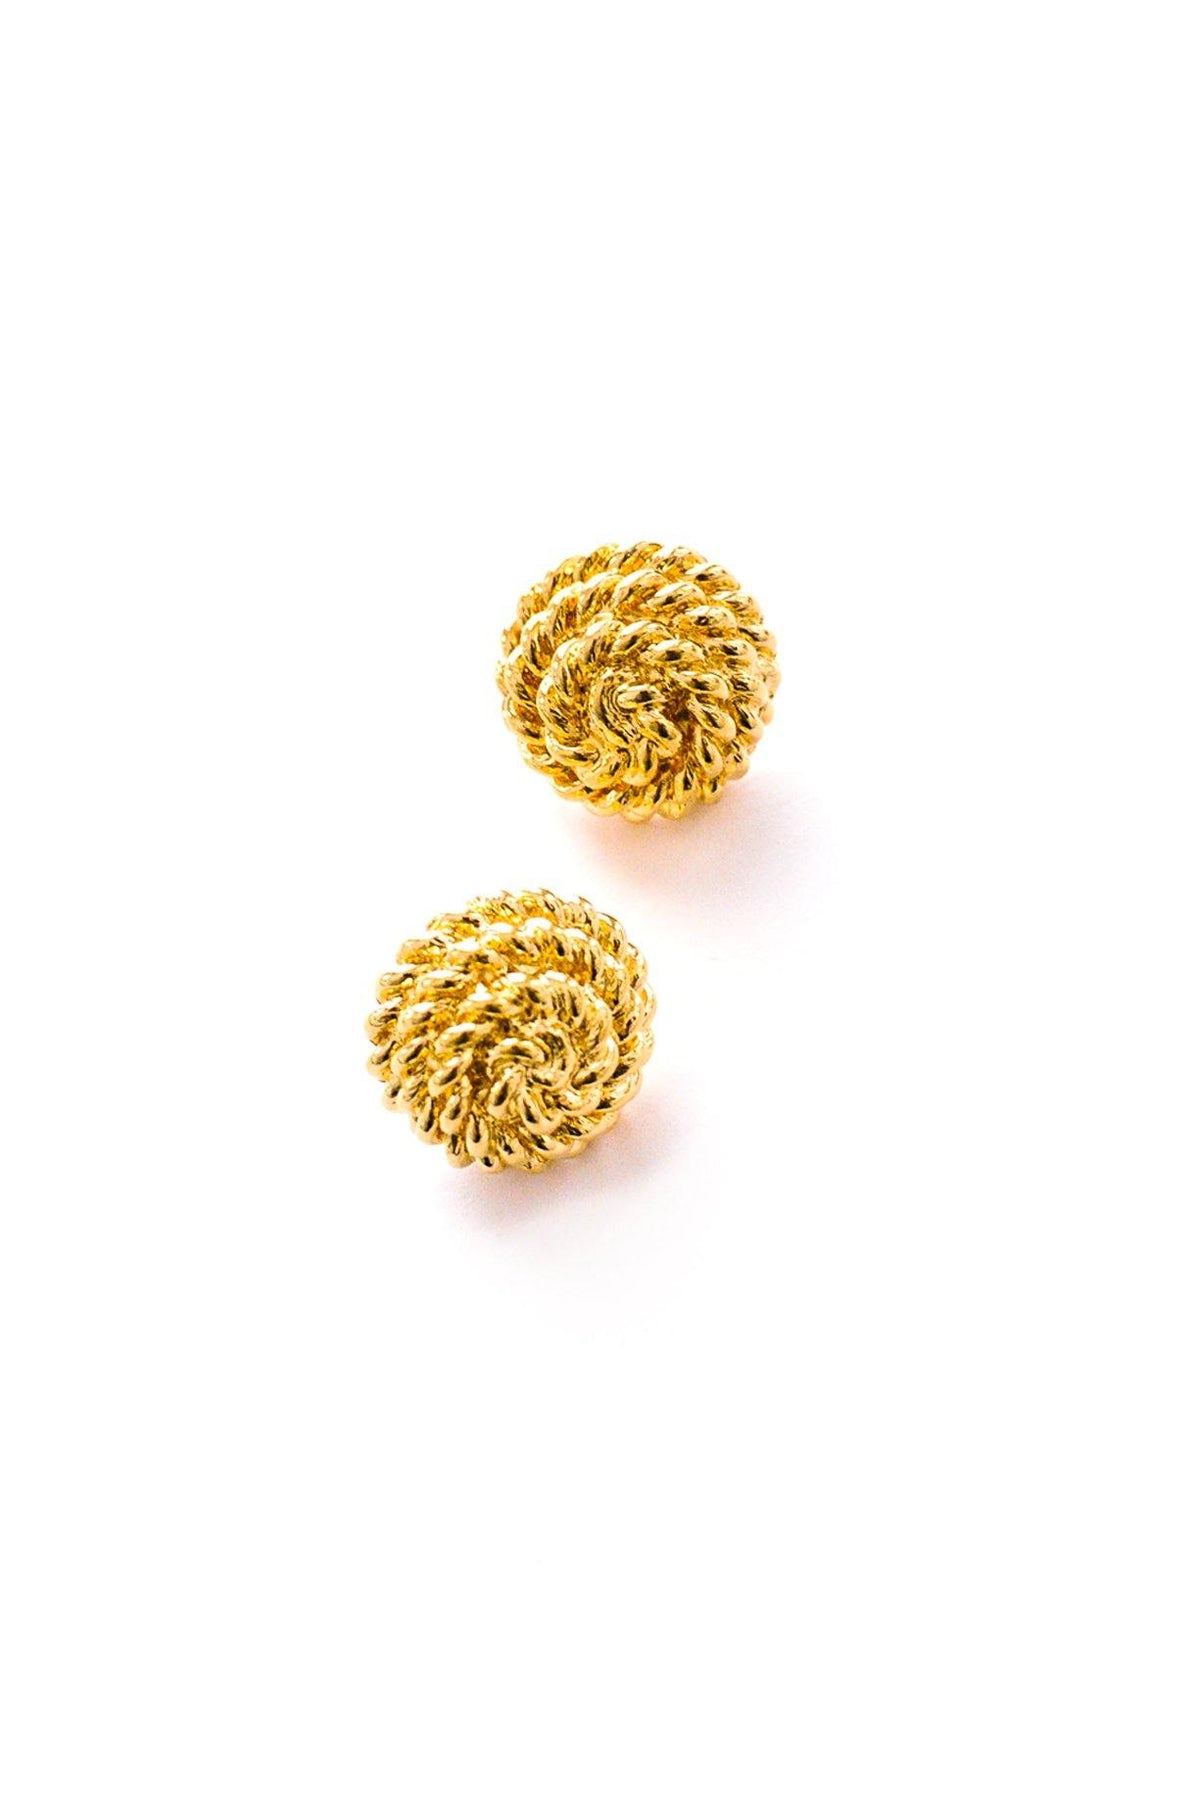 Vintage Monet Gold Rope Wrapped Pierced Earrings from Sweet & Spark